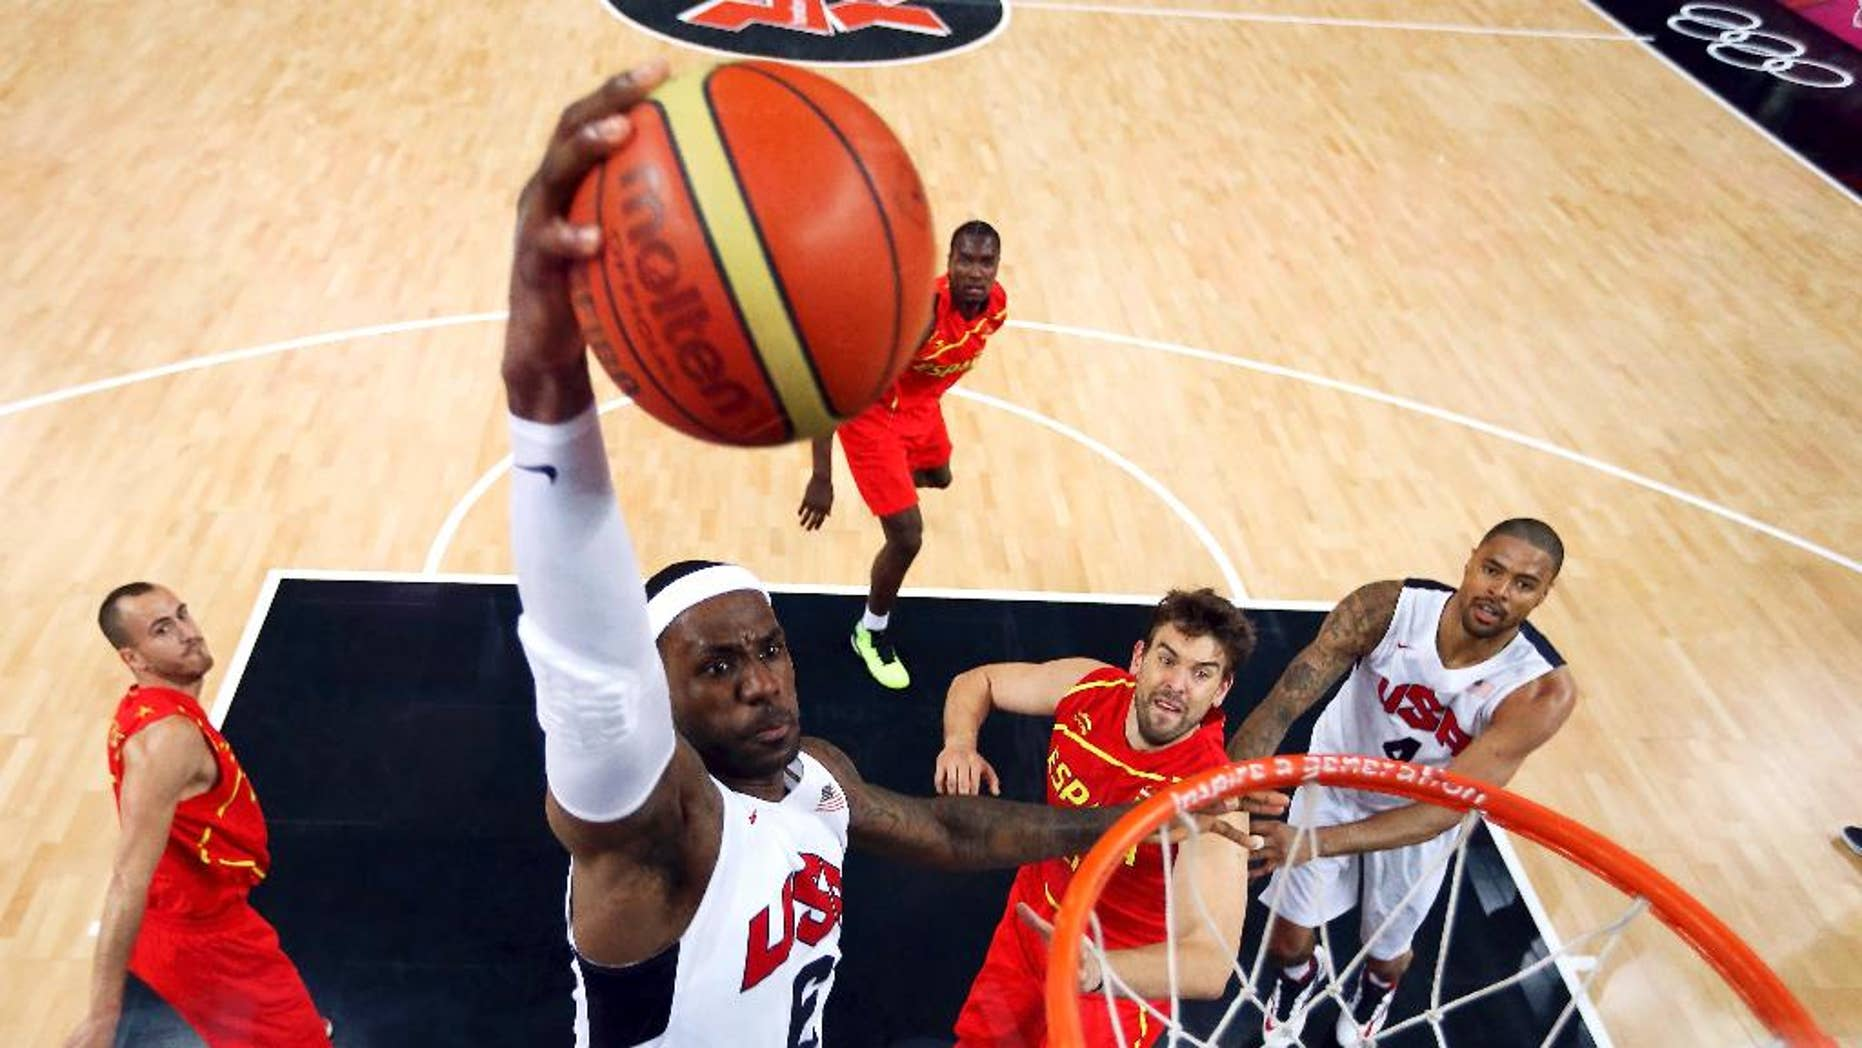 """FILE - In this Aug. 12, 2012, file photo, United States' LeBron James (6) dunks against Spain during the men's gold medal basketball game at the 2012 Summer Olympics in London. James said Monday, Sept. 29, 2014, following the Cavaliers' practice that he's """"nowhere near"""" deciding if he'll again play for Team USA in two years for the 2016 Olympics. (AP Photo/Christian Petersen, Pool, File)"""